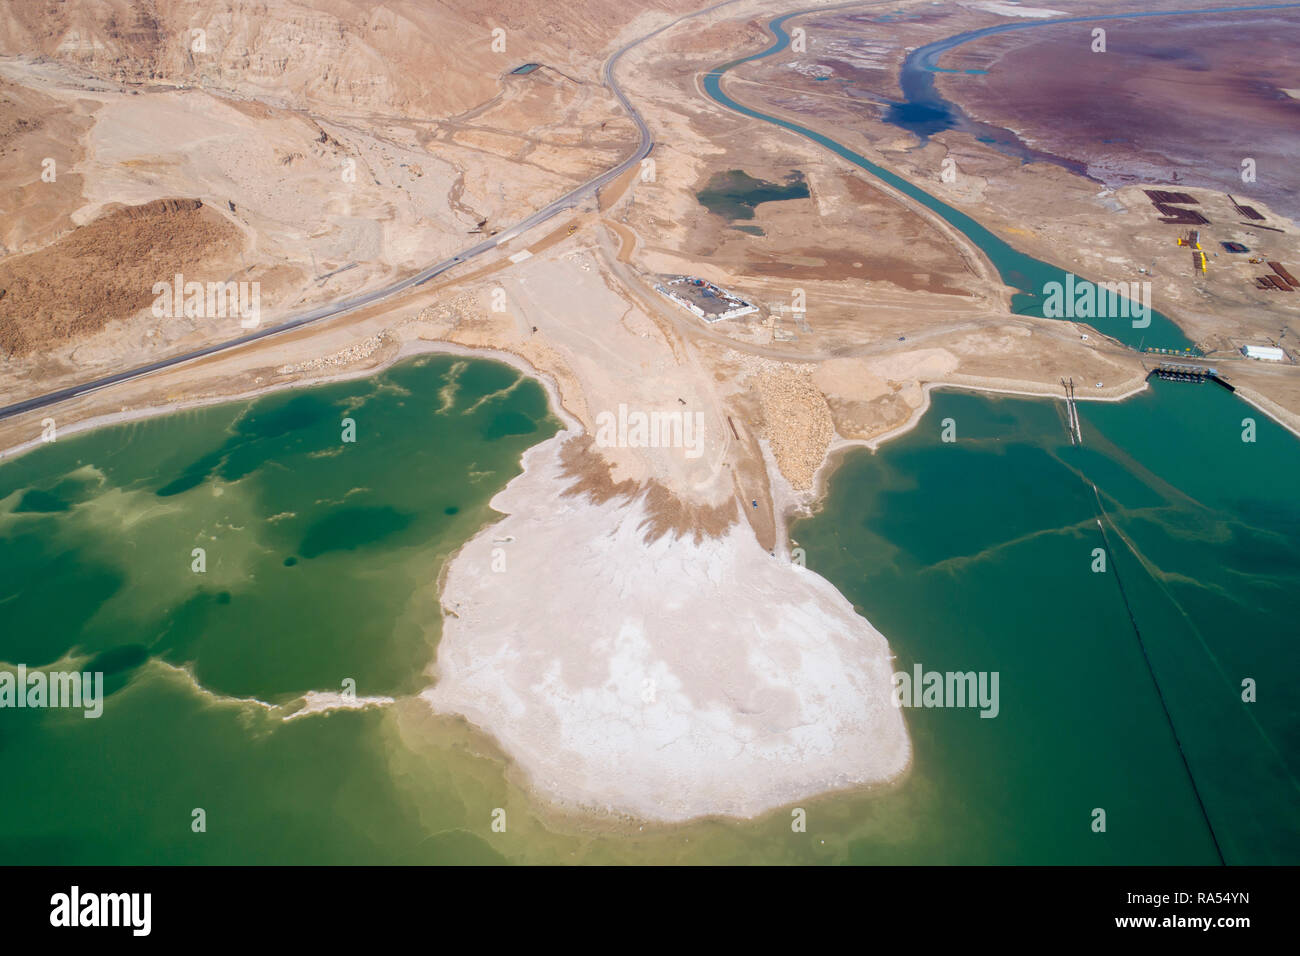 Aerial Photography with a drone. Elevated view of the canal leading water from the northern part to the Dead Sea Works, in the southern part on the sh - Stock Image